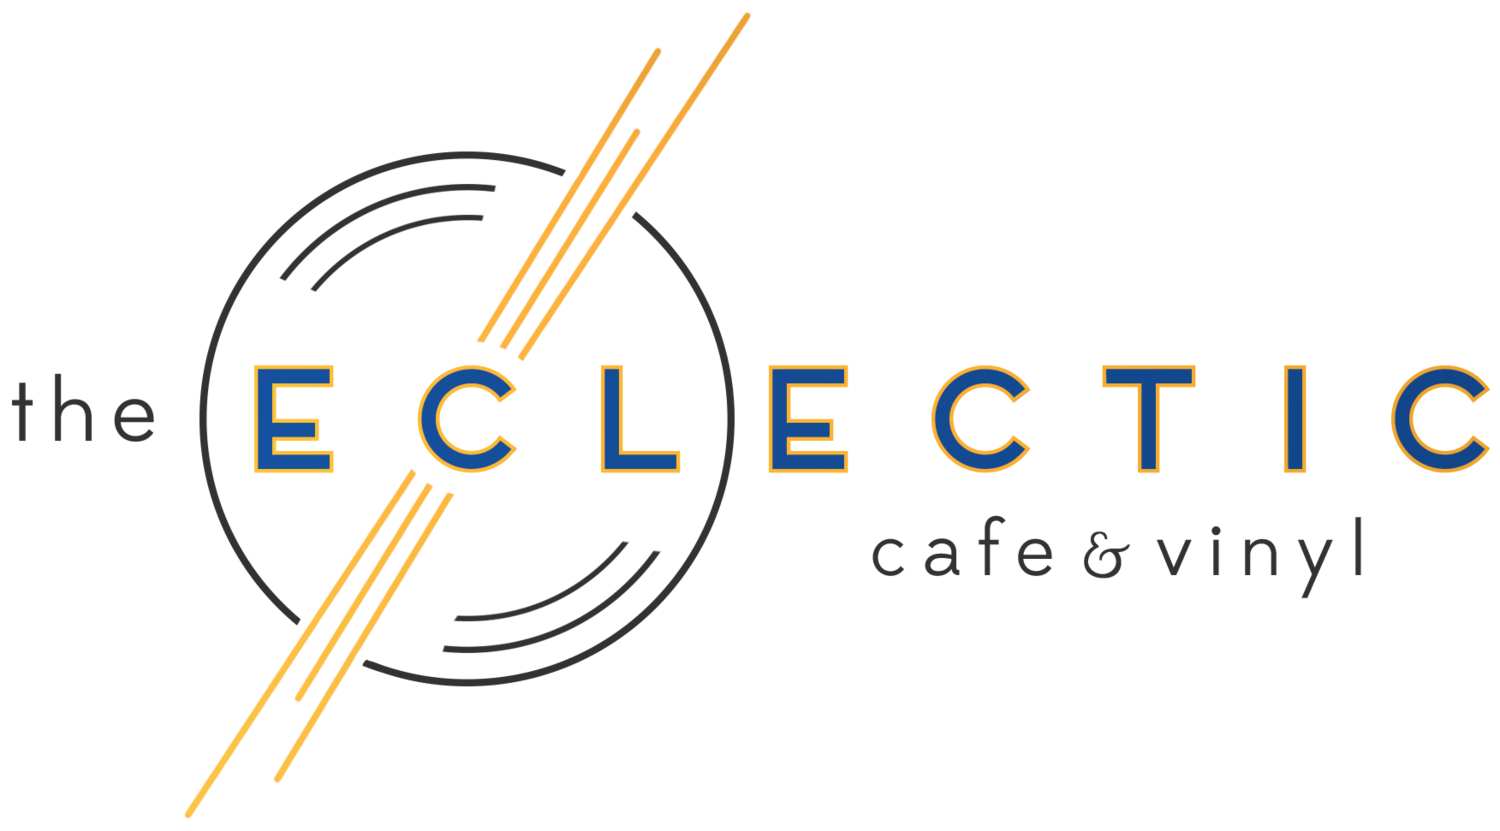 The Eclectic Cafe & Vinyl